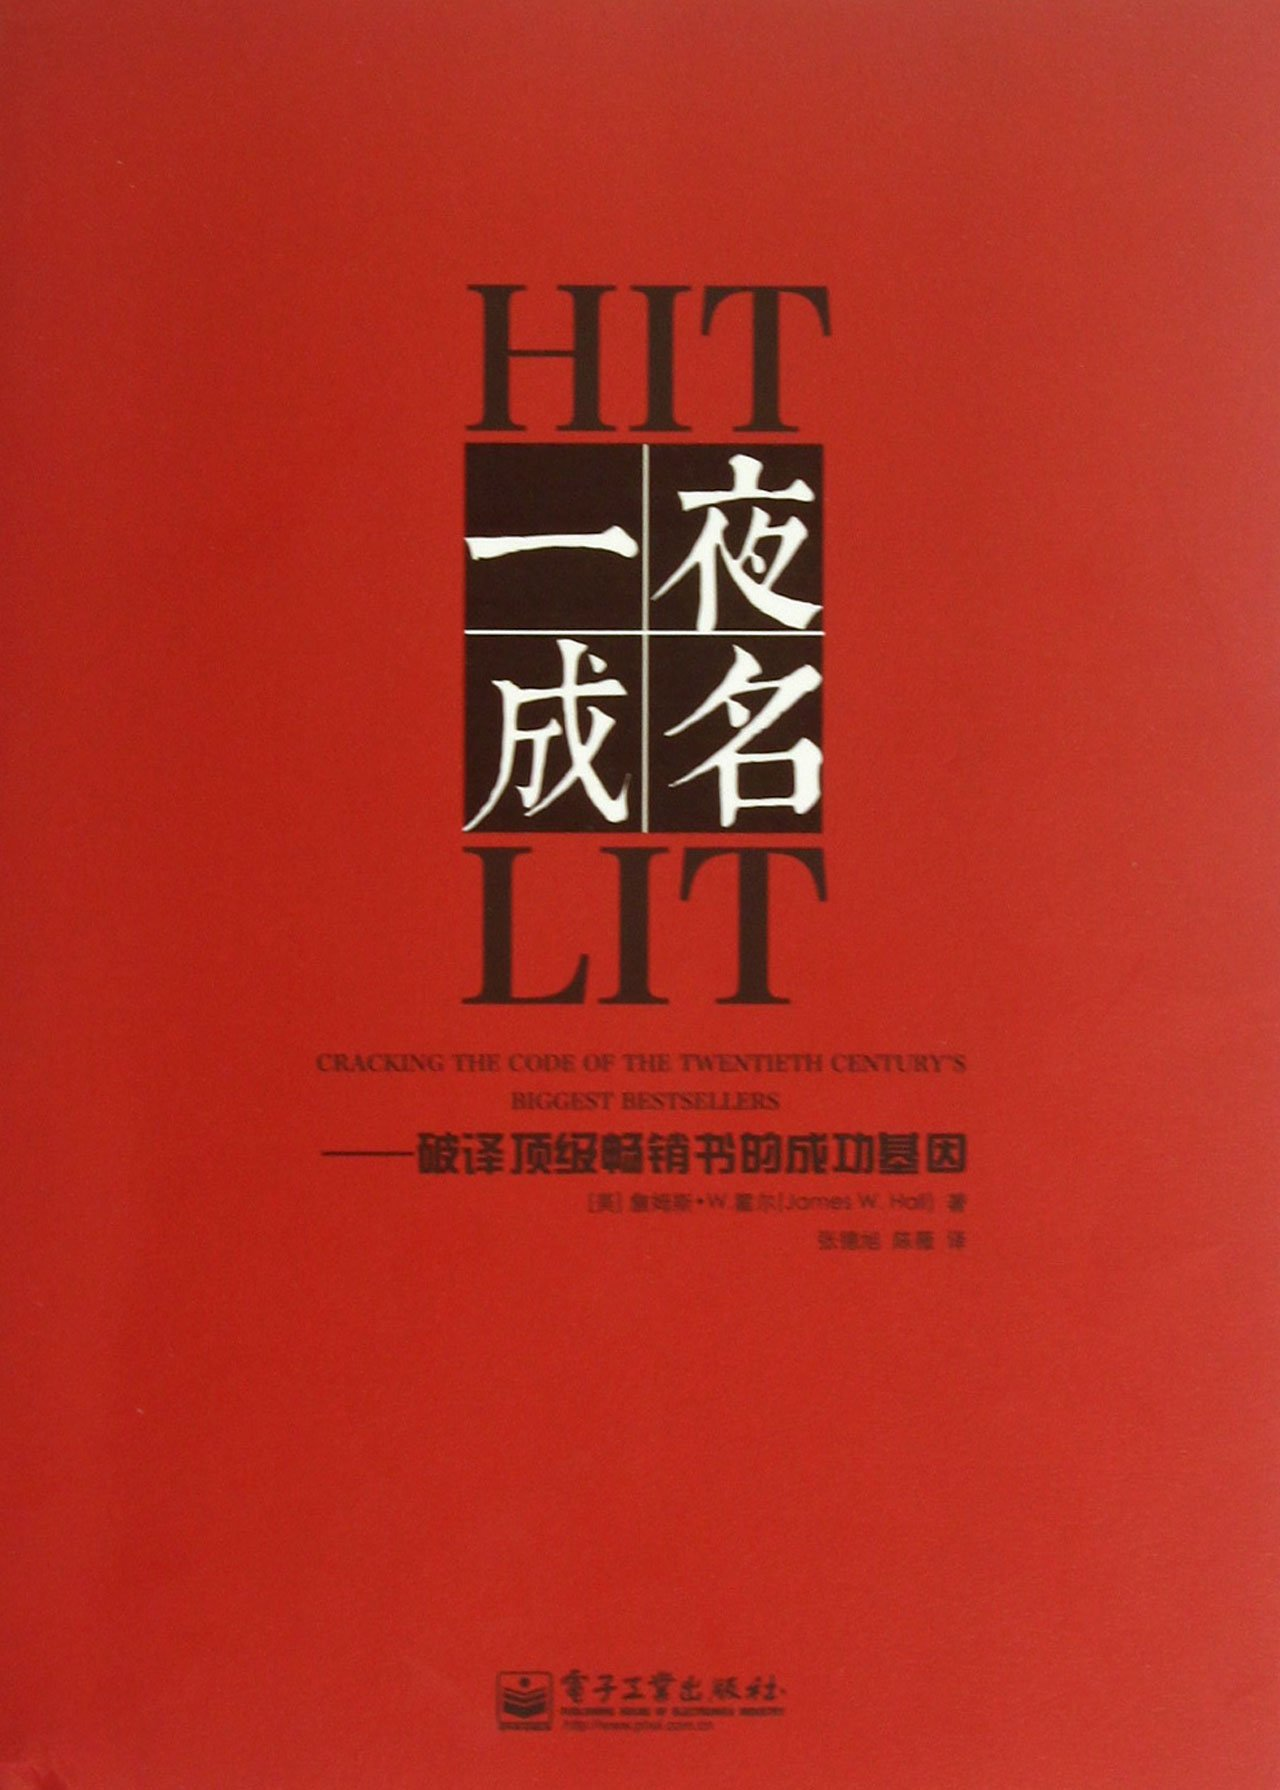 Hit lit:cracking the code of the twentieth centurys biggest bestsellers (Chinese Edition)